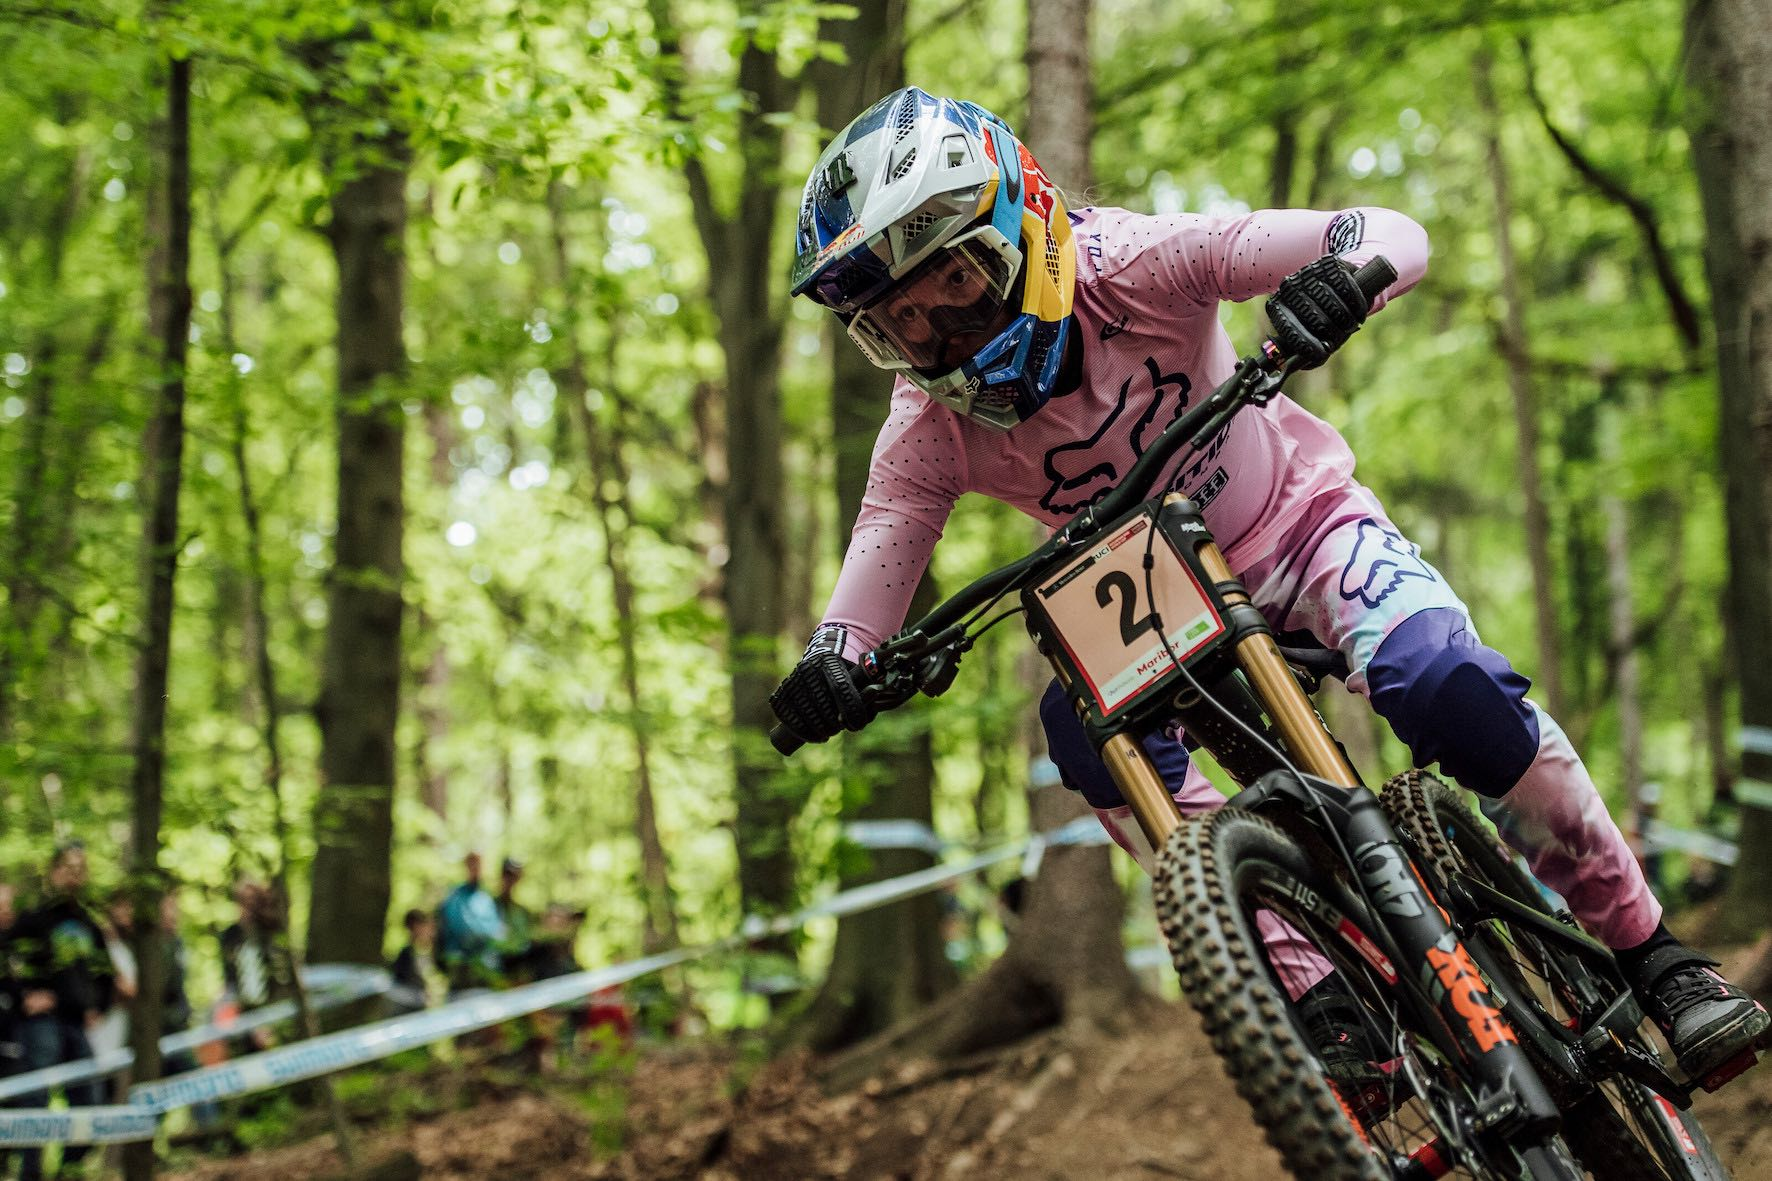 Tahnee Seagrave winning the Downhill MTB World Cup race in Maribor